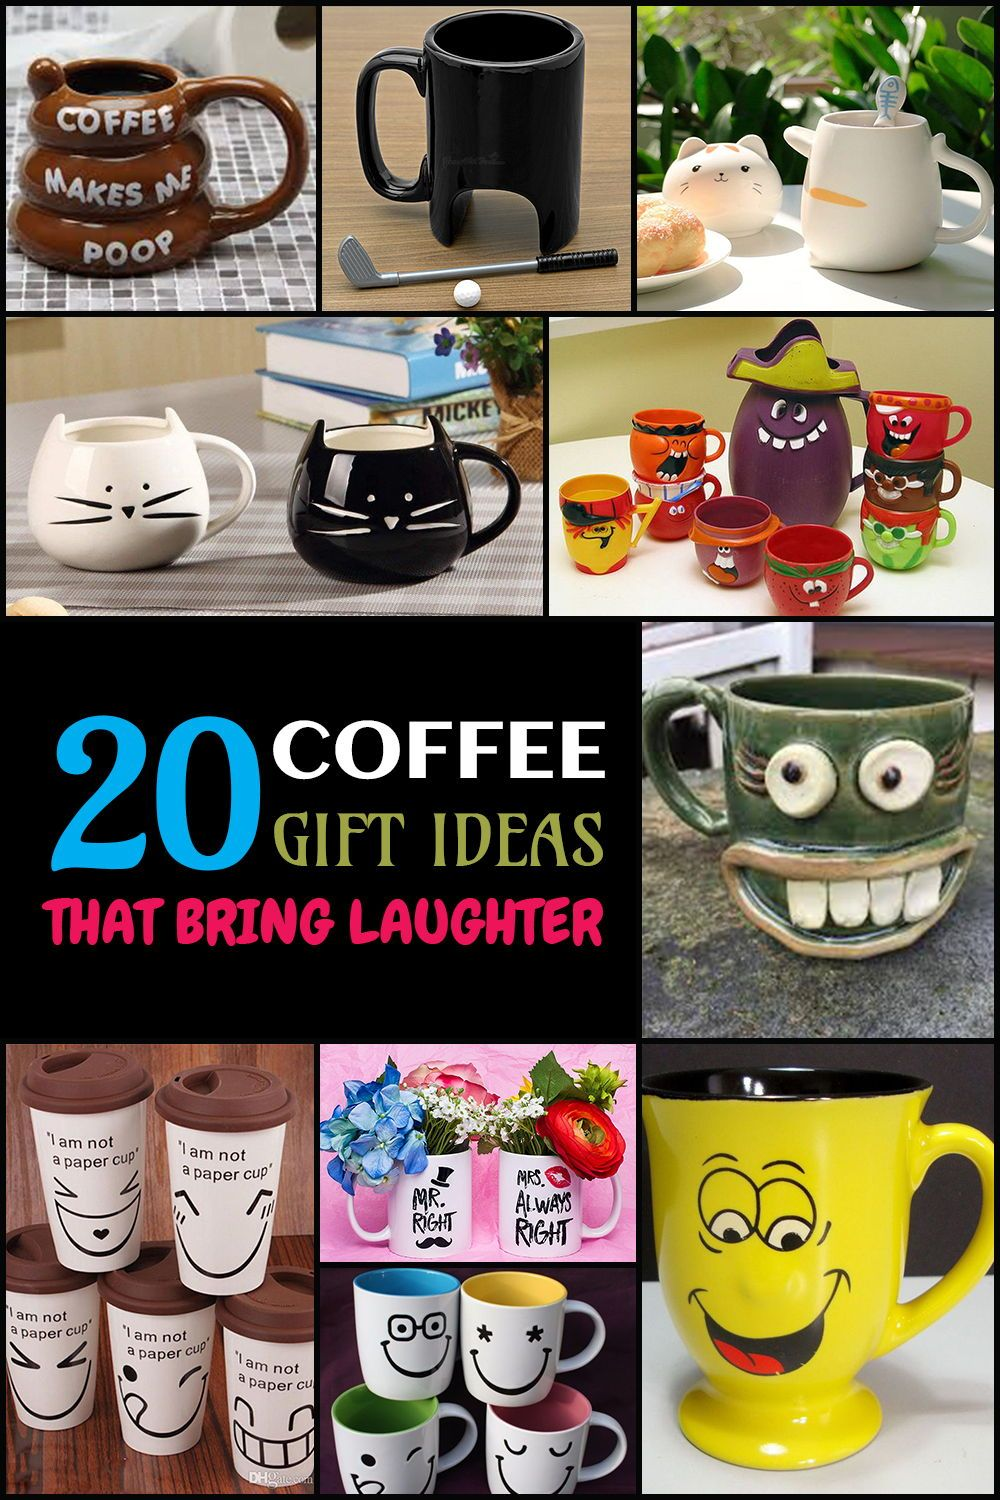 20 funny coffee gift ideas that bring laughter in 2019